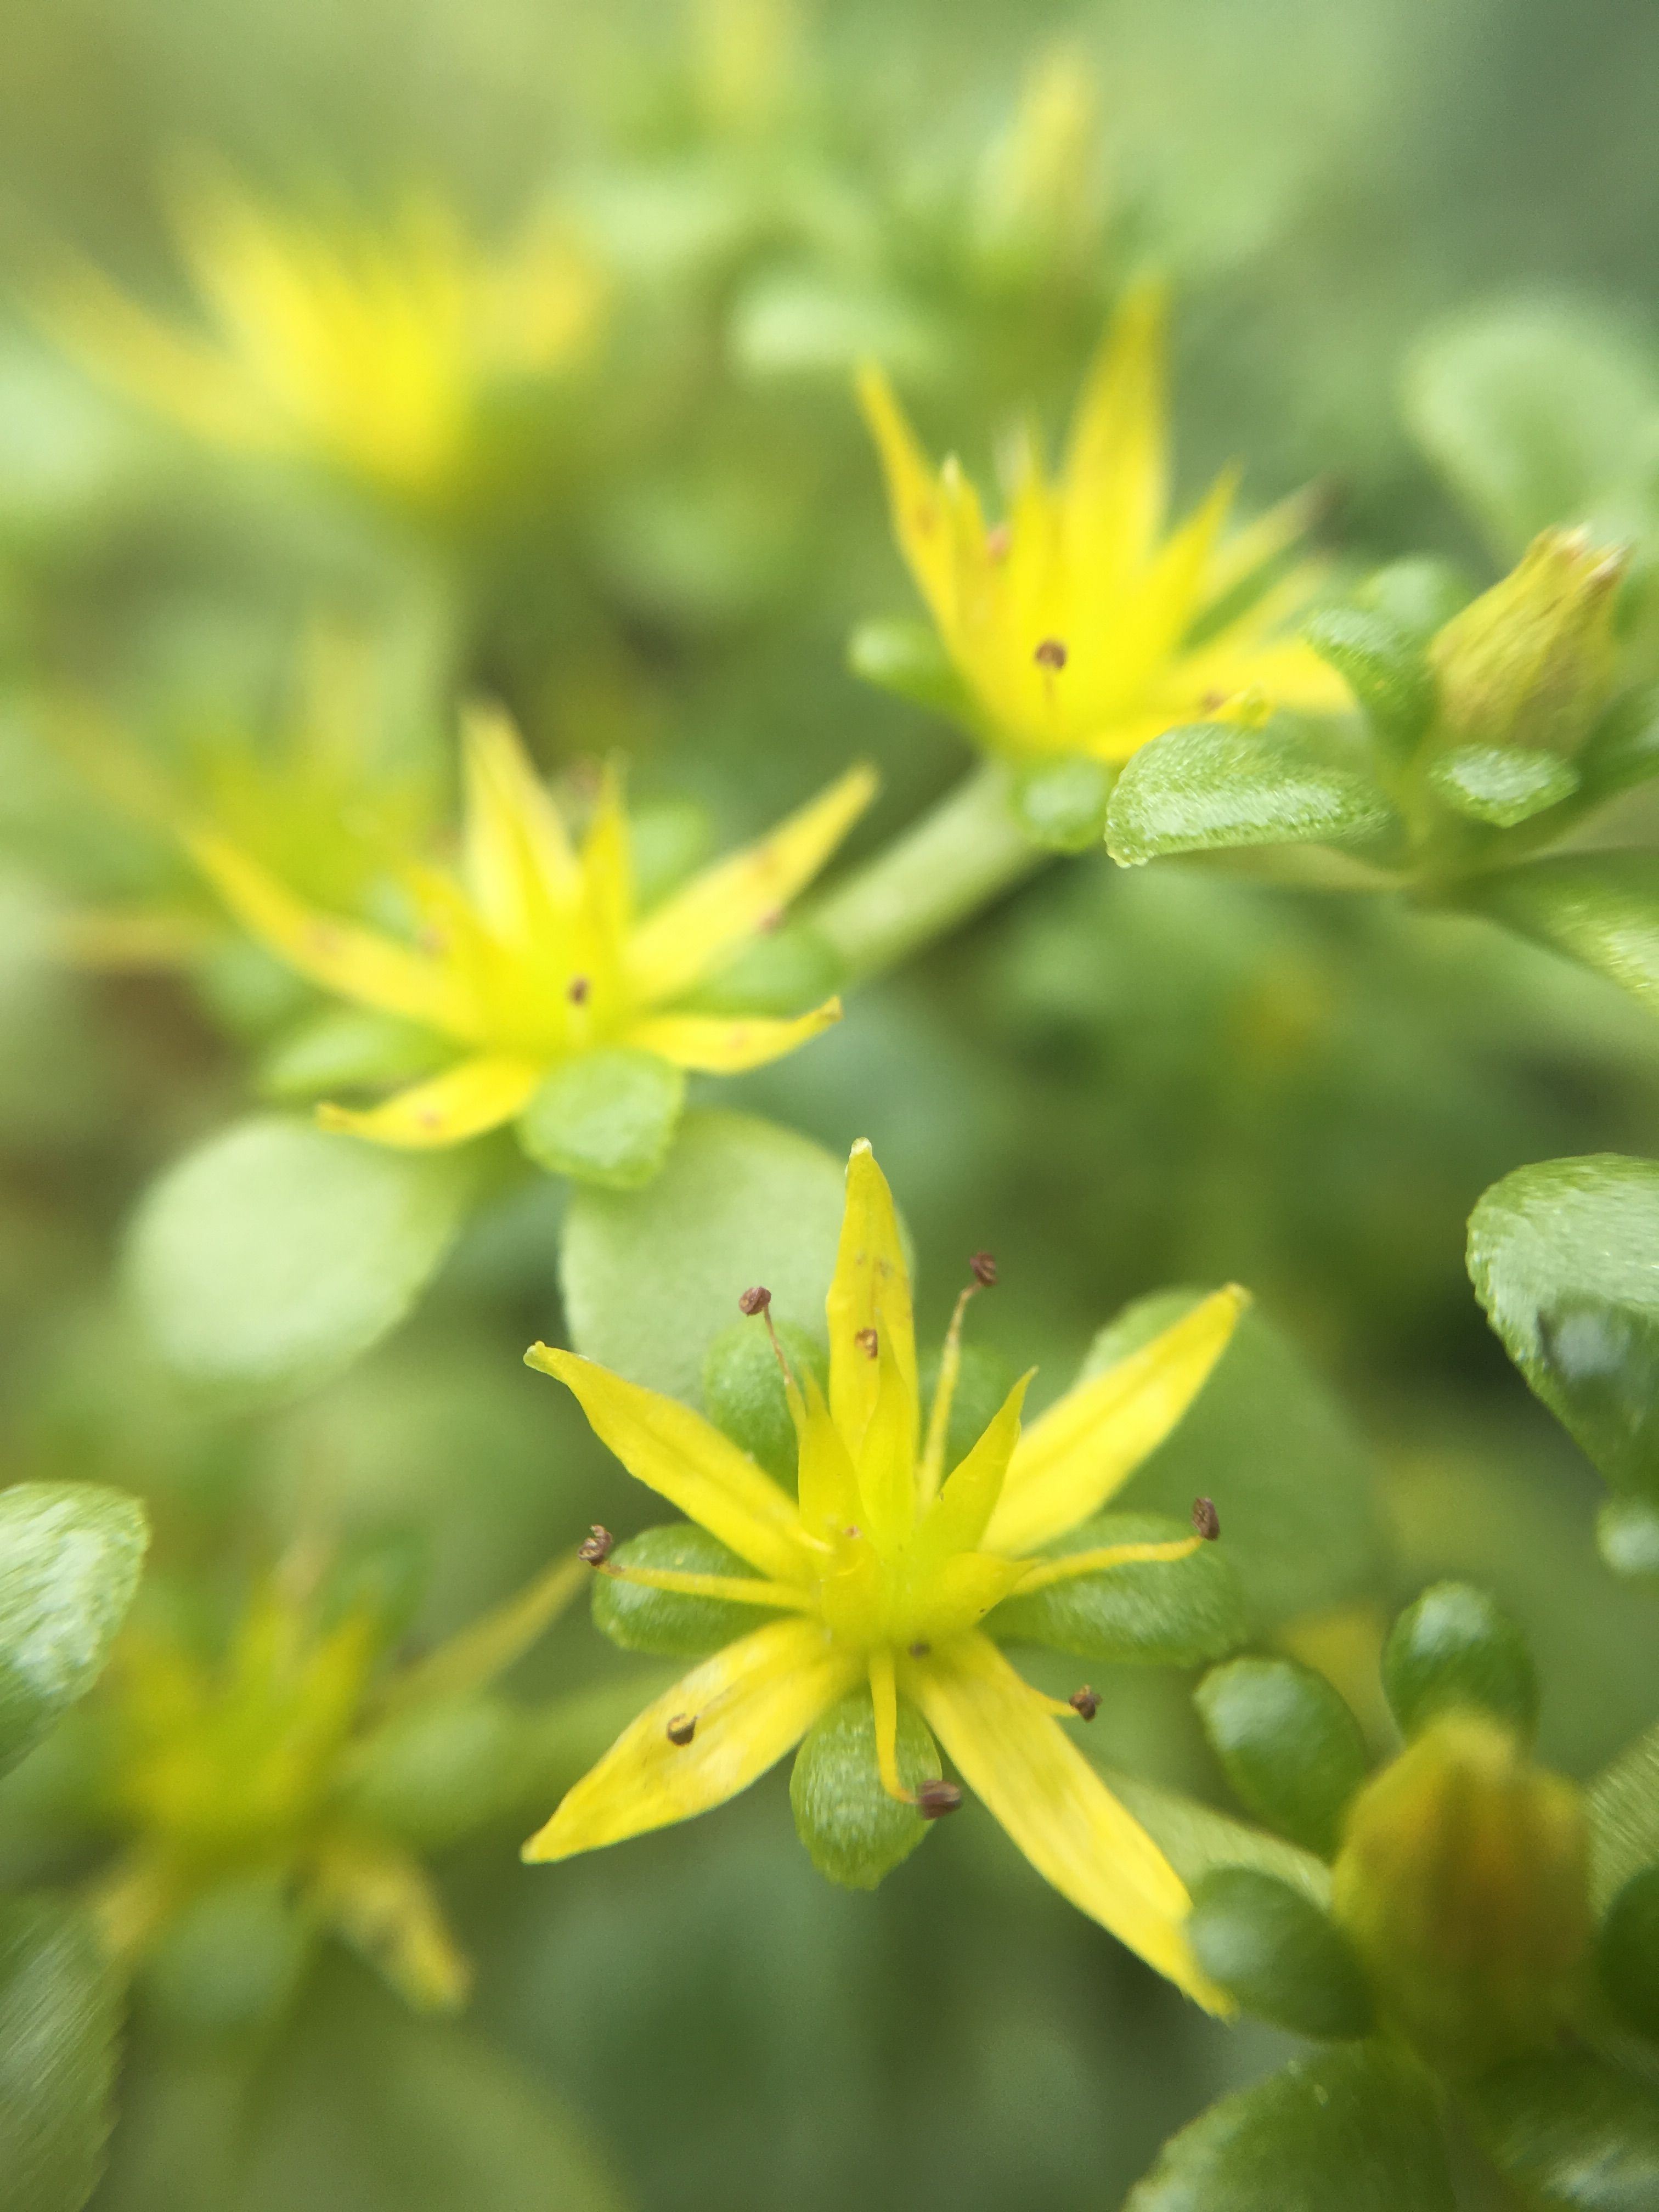 Sedum Green Mound Growing Succulents Yellow Flowers And Flowers